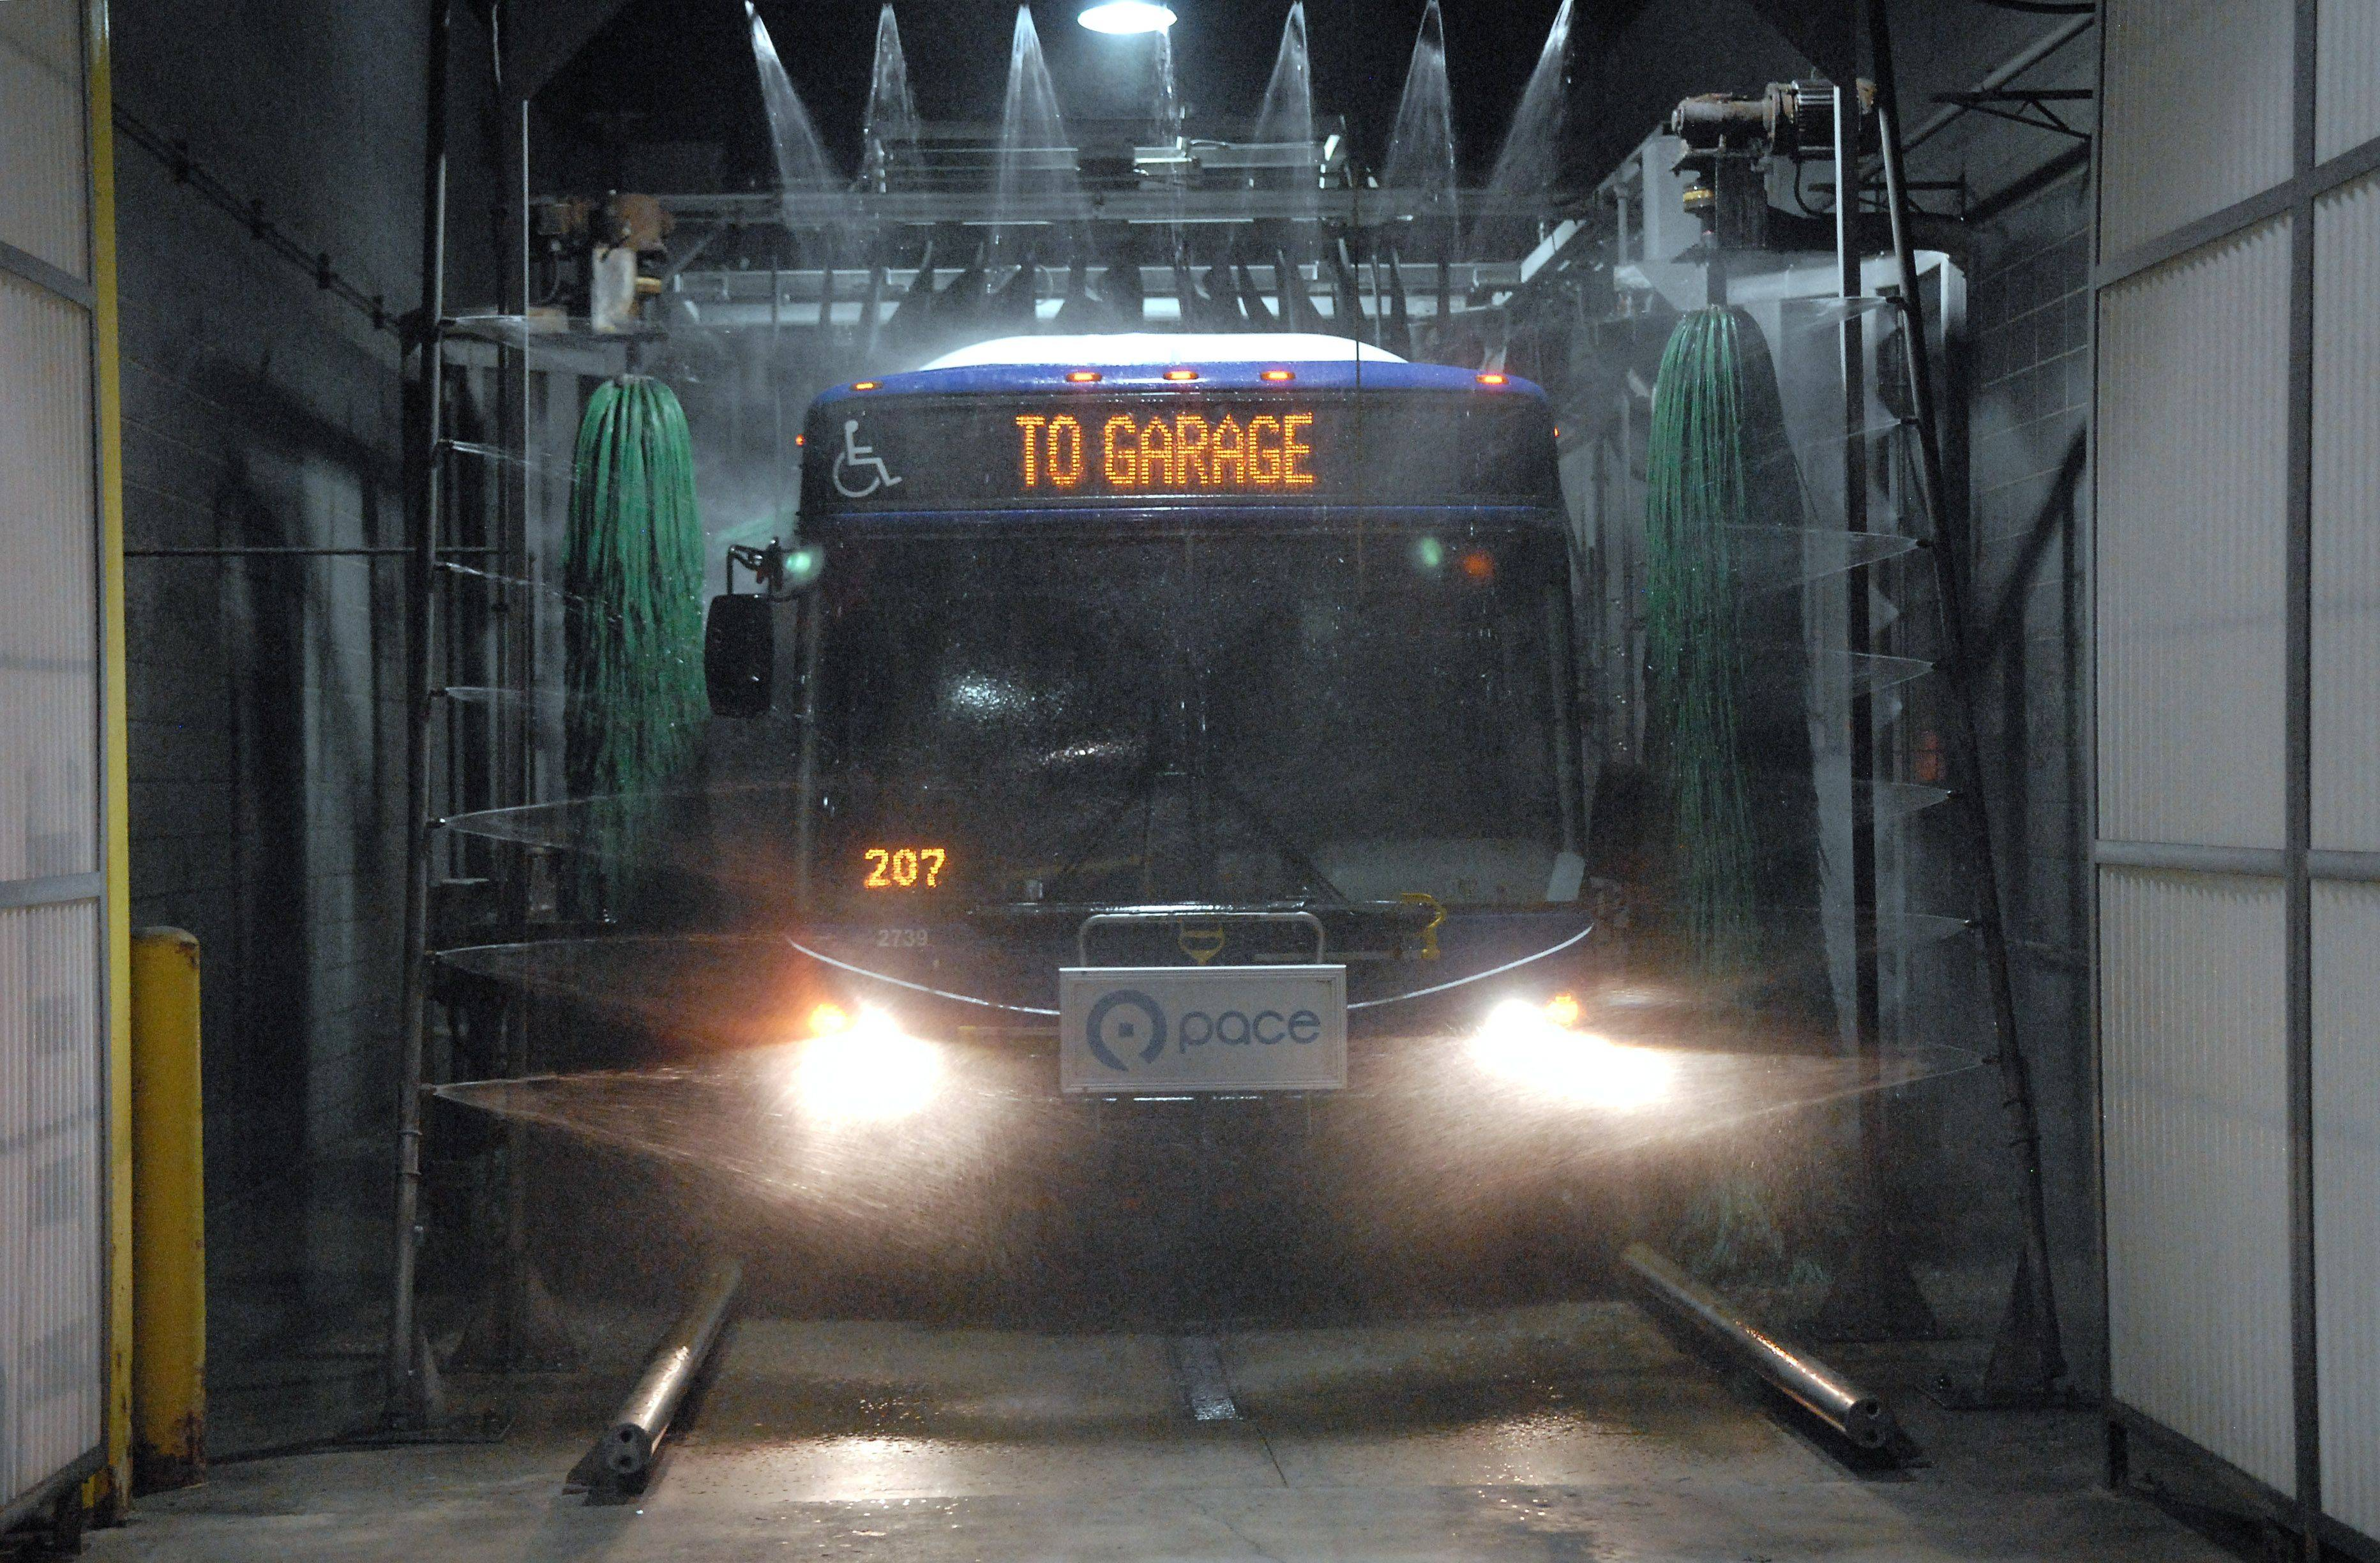 Inside the garage is a washing station built just for the buses. After completing a daily run of routes, buses are brought to the garage, refueled, washed, then parked ready to go the next day. The wash is exceptionally fast.